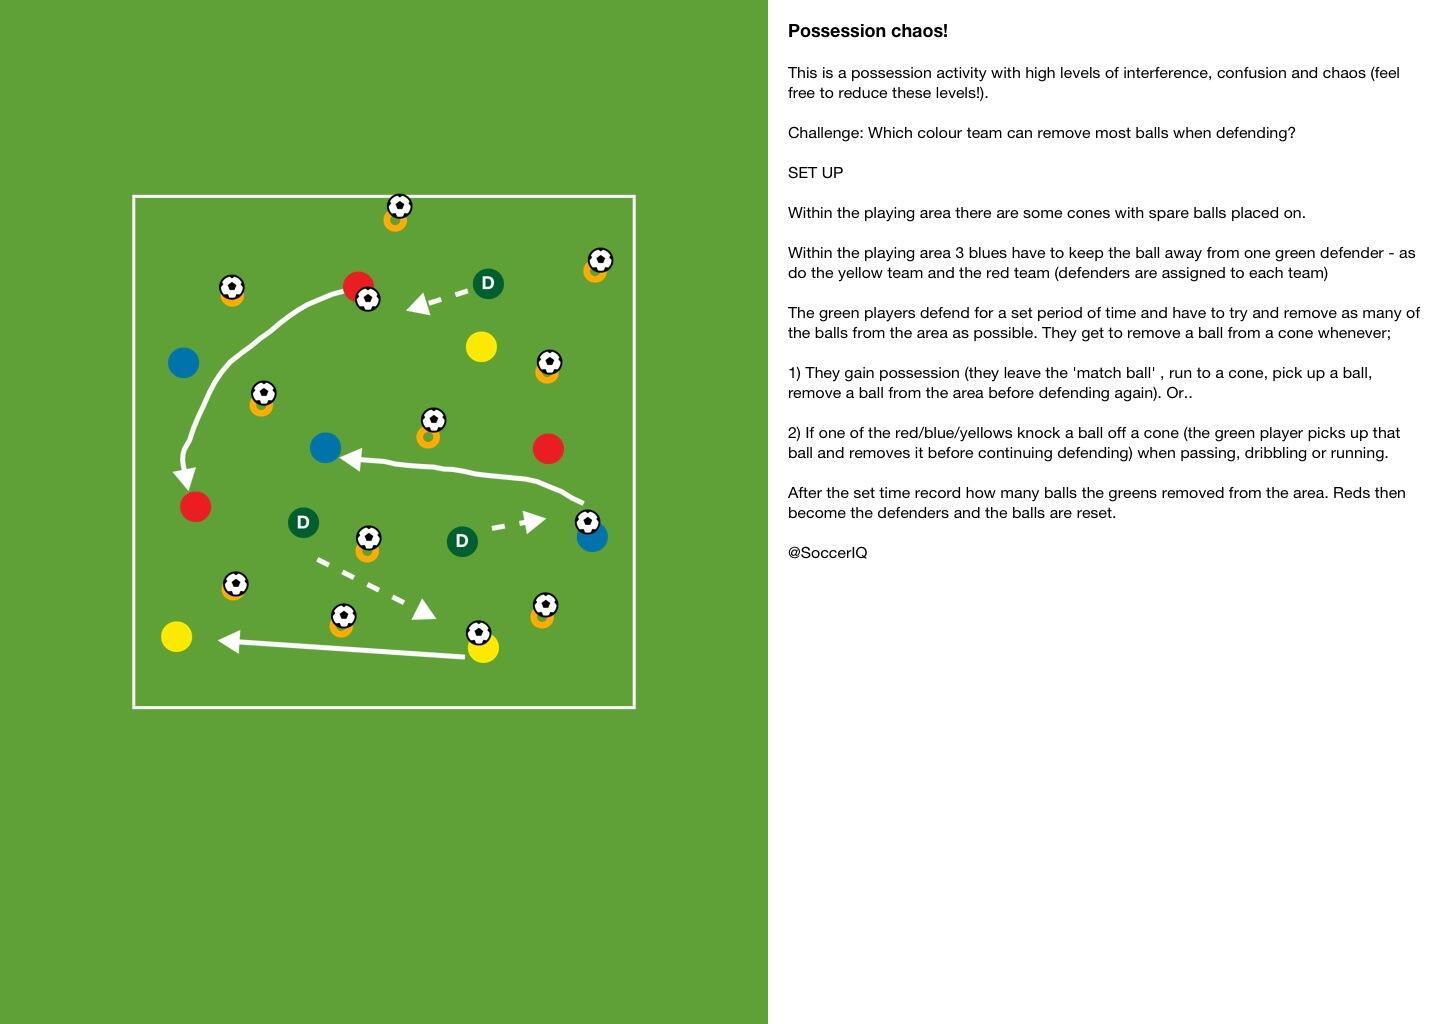 Try this 'Possession chaos' activity. Loads of interference, confusion and competition... http://t.co/JwekLnN7aj